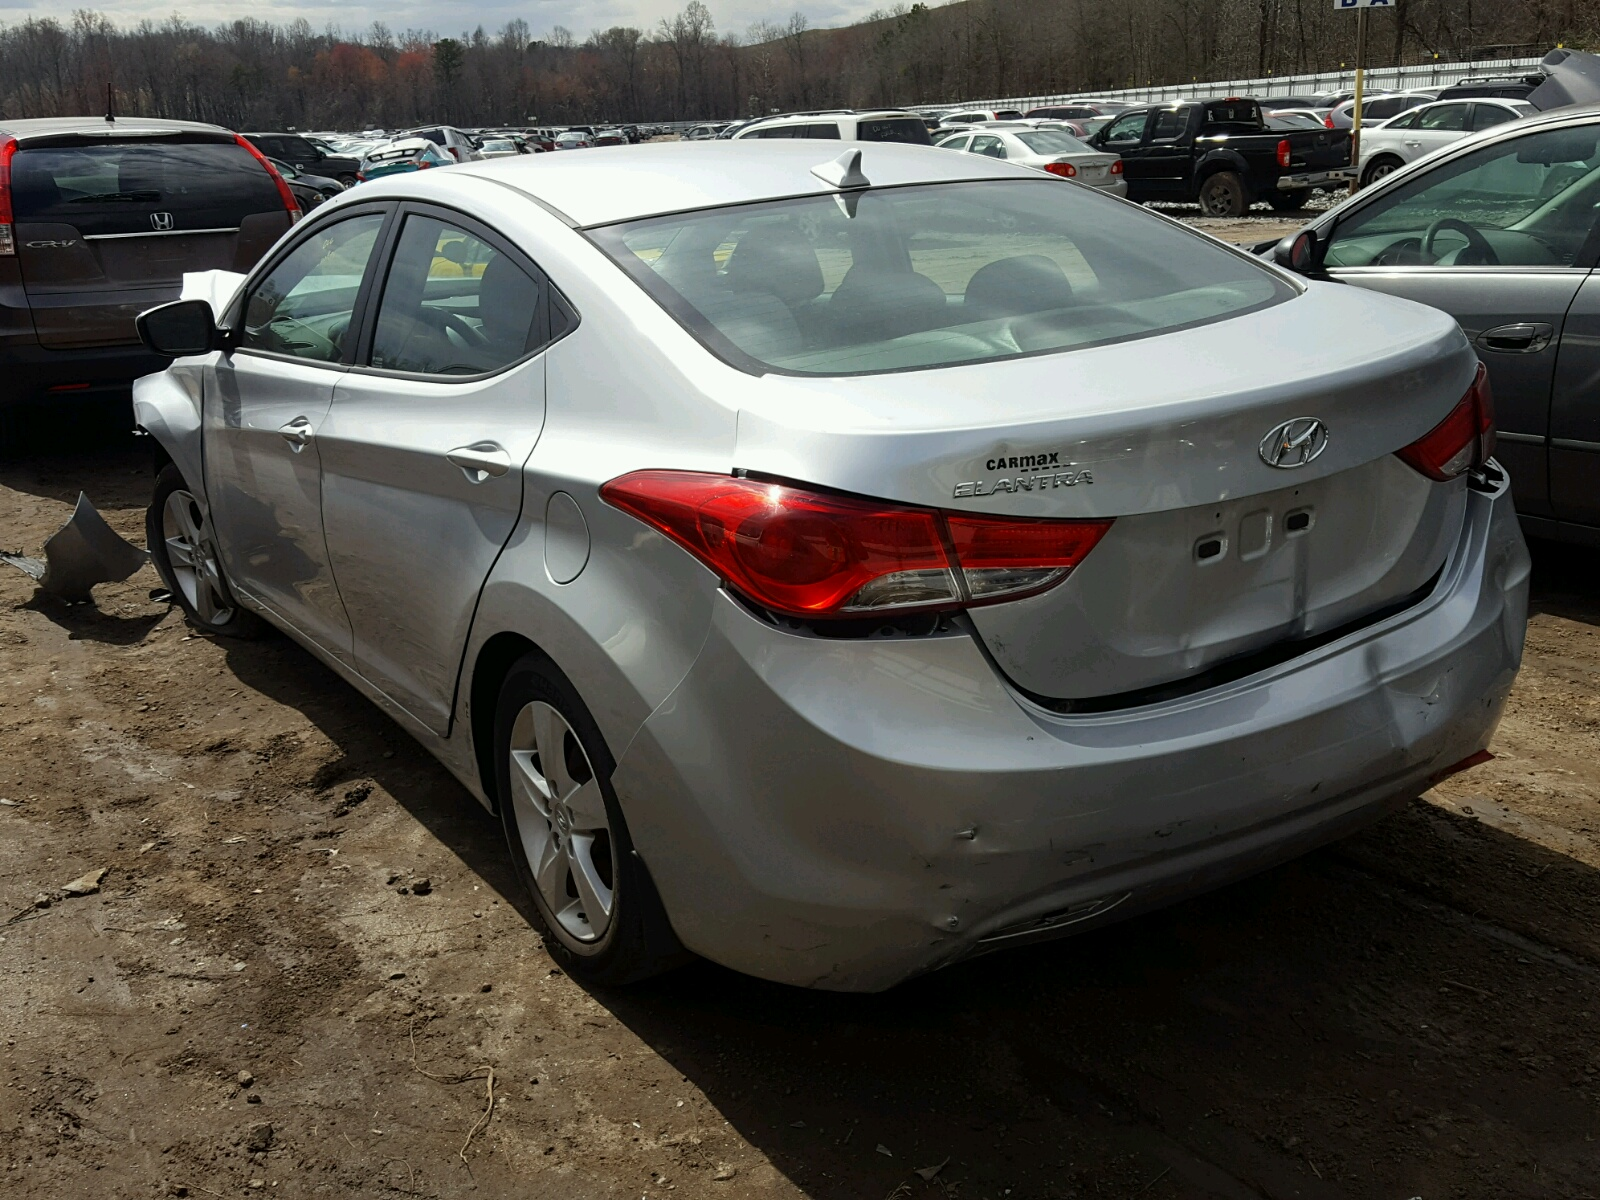 gls auctions red auto sale left carfinder online sc greer of hyundai accent en on in cert copart lot view salvage title